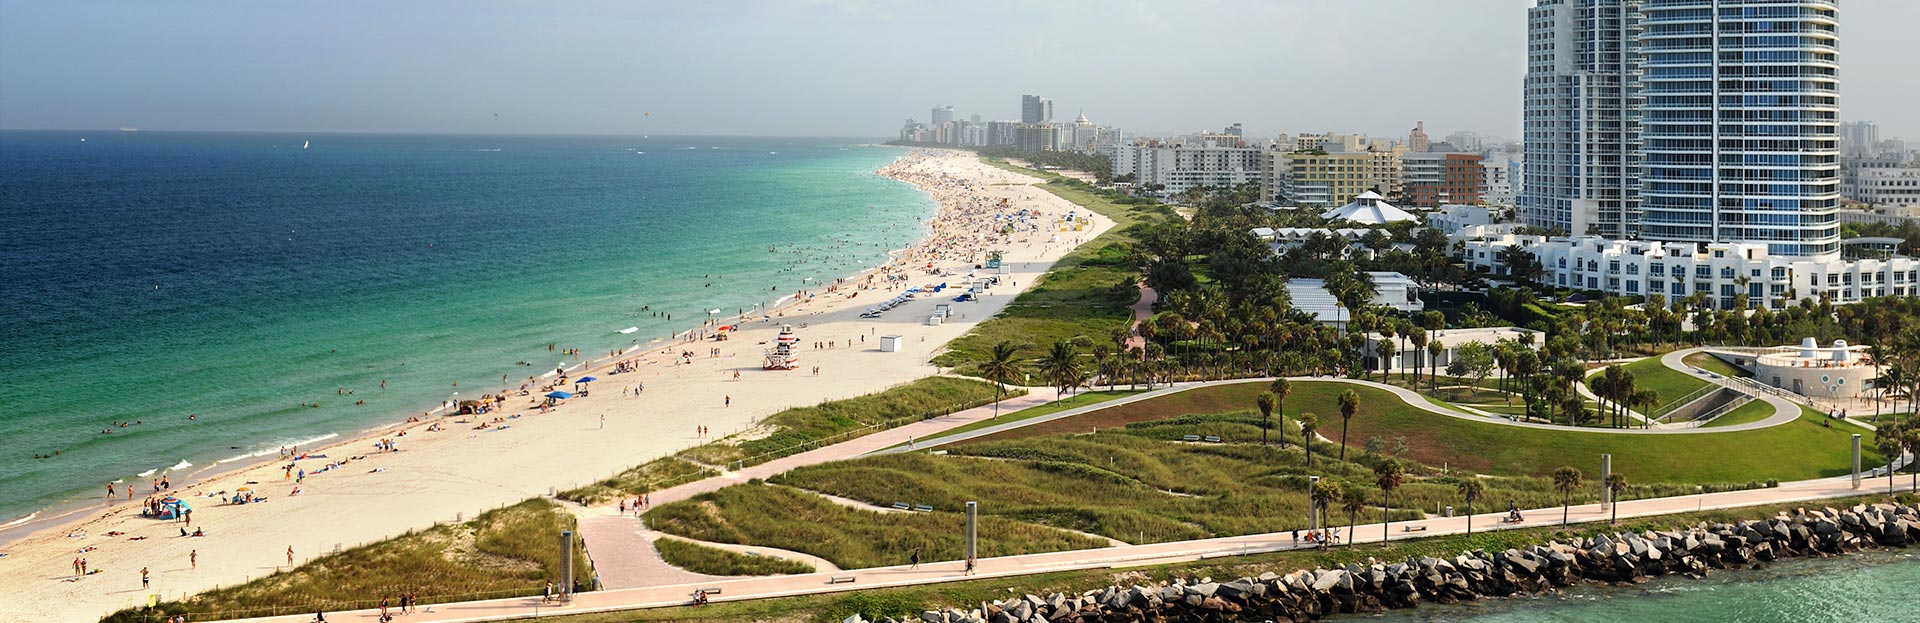 Florida Vacations Packages From Canada